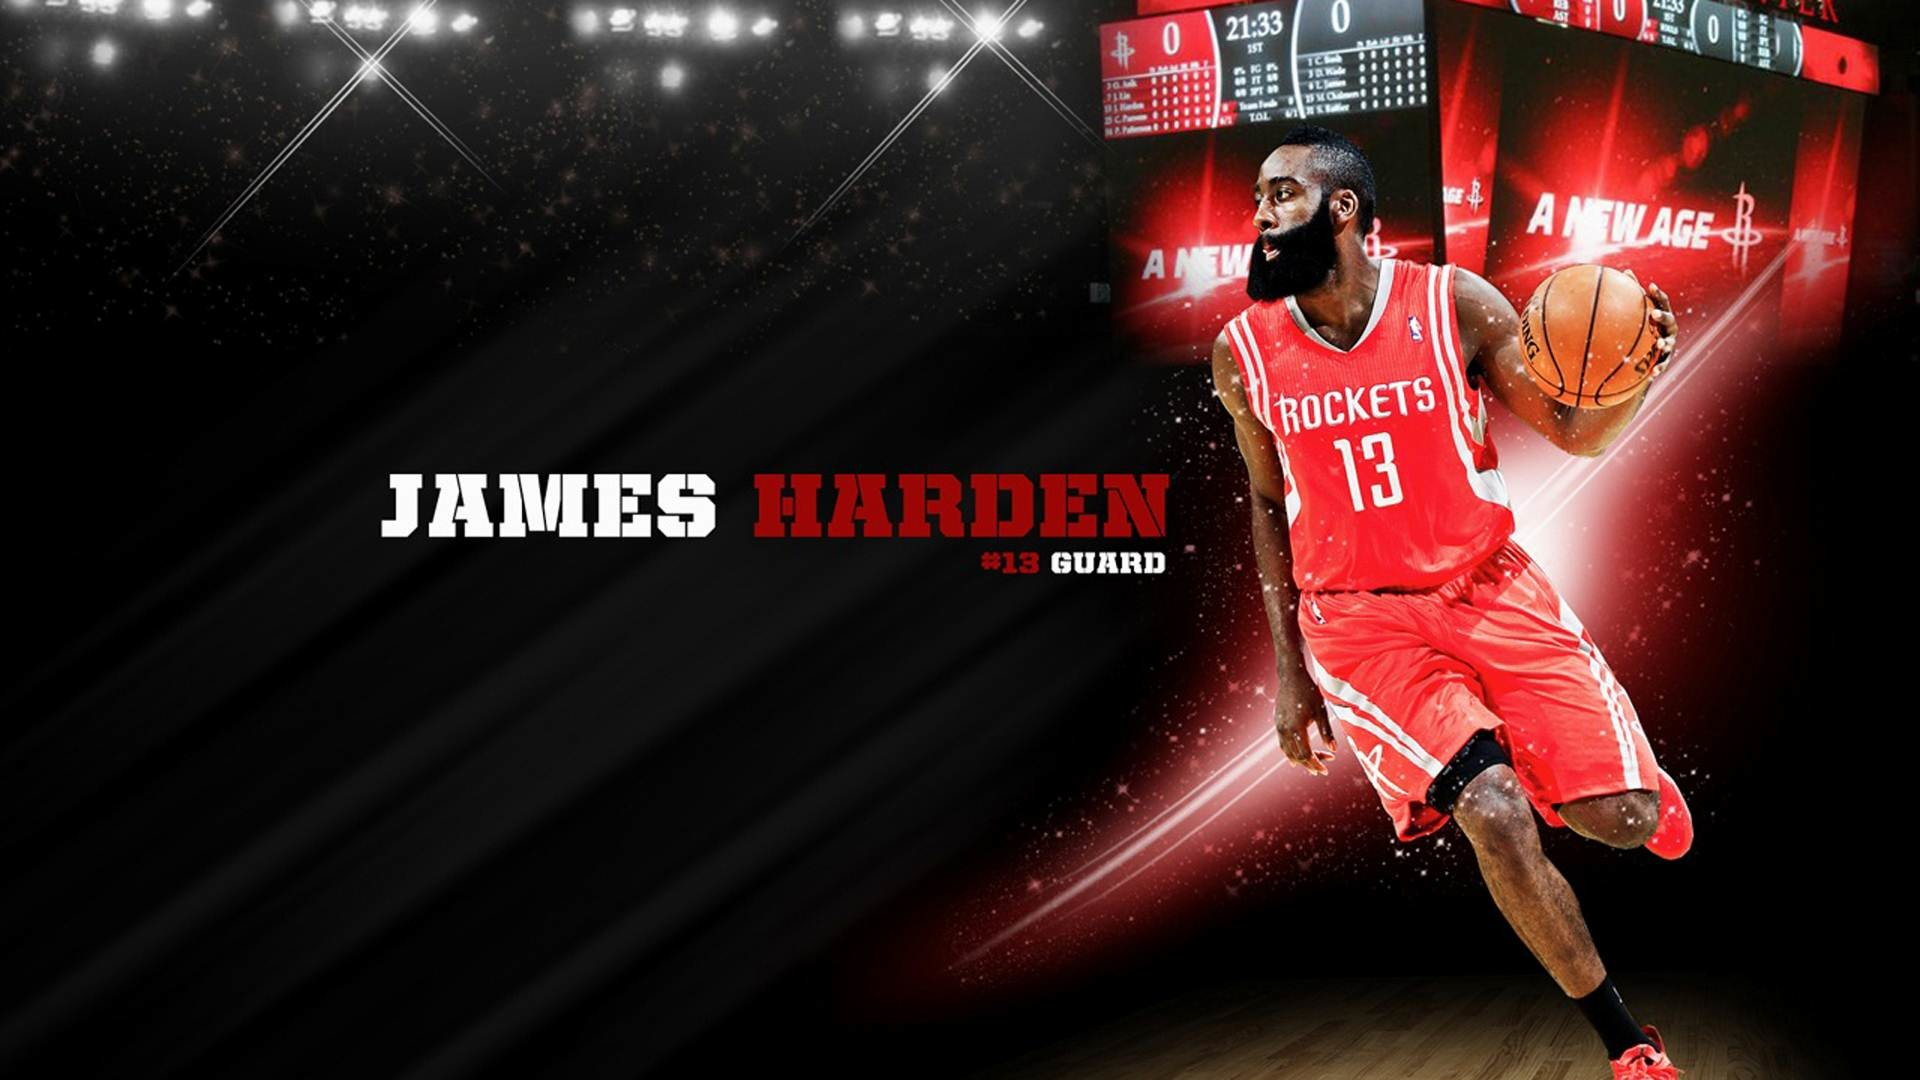 3a716f303453 2052x2052 James Harden. Download · 2048x2048 Related to Houston Rockets ...